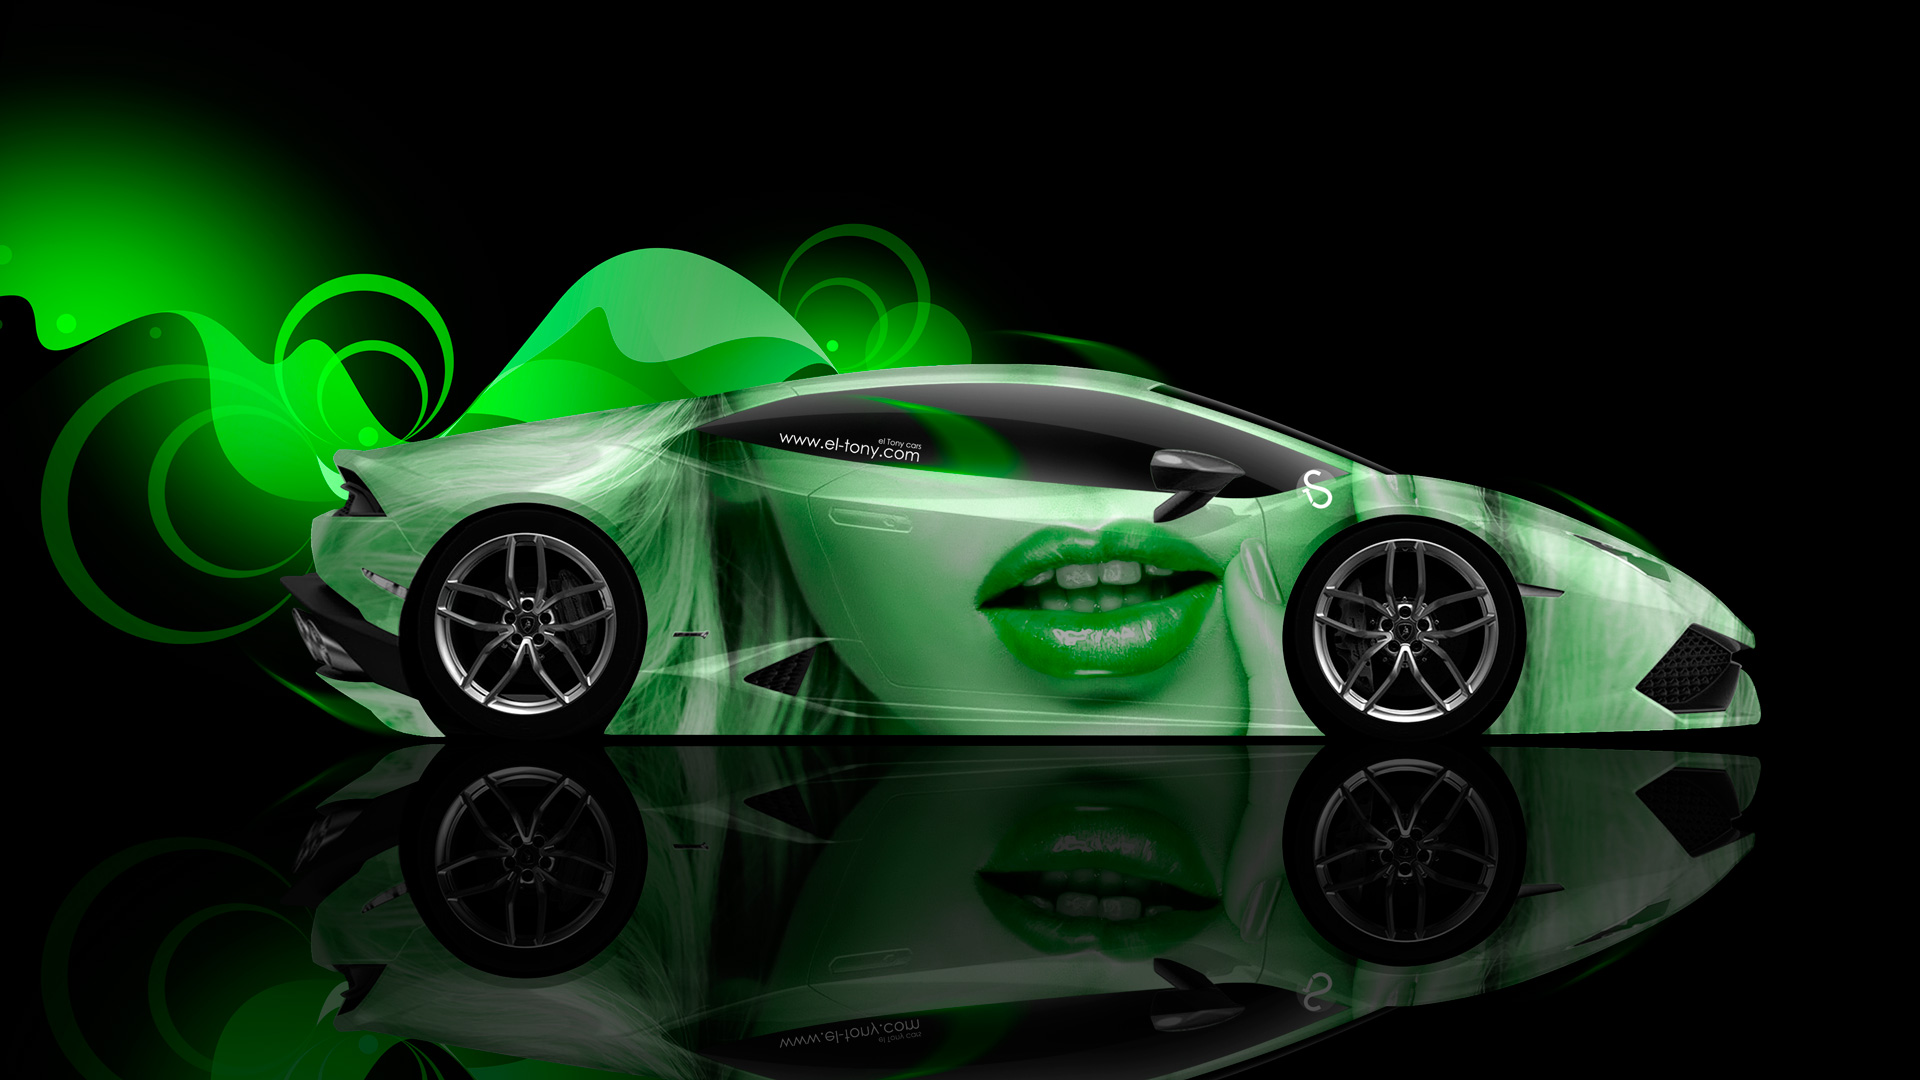 Lamborghini Huracan Side Glamour Girl Aerography Car 2014